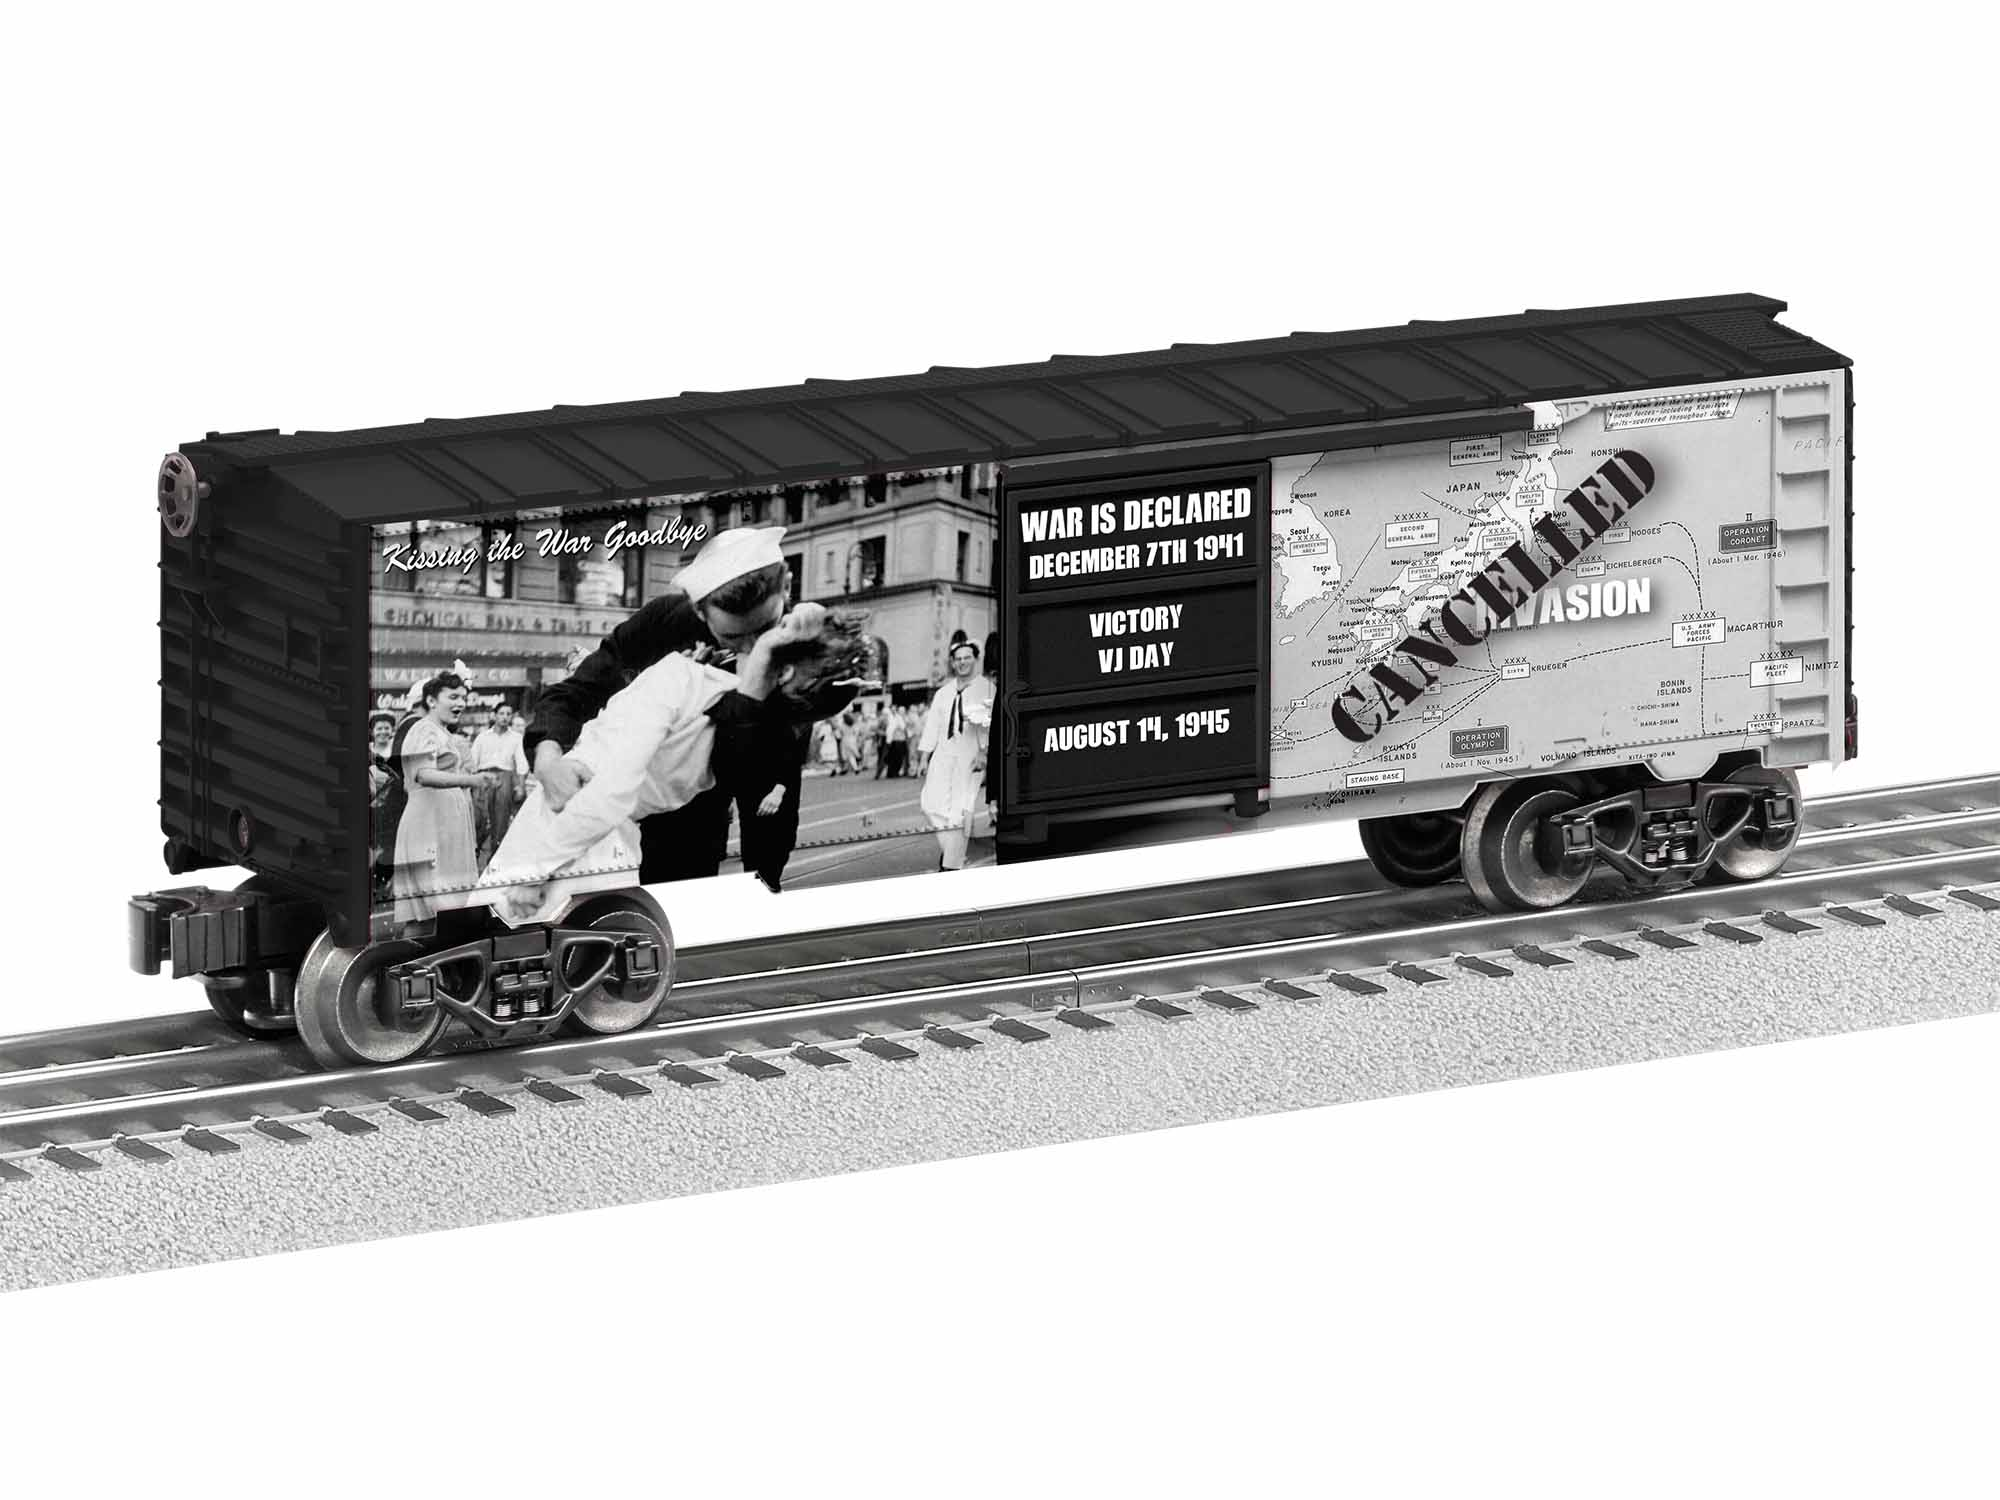 LNL1938210 Lionel O-27 Kiss the War Goodbye Boxcar Made in USA